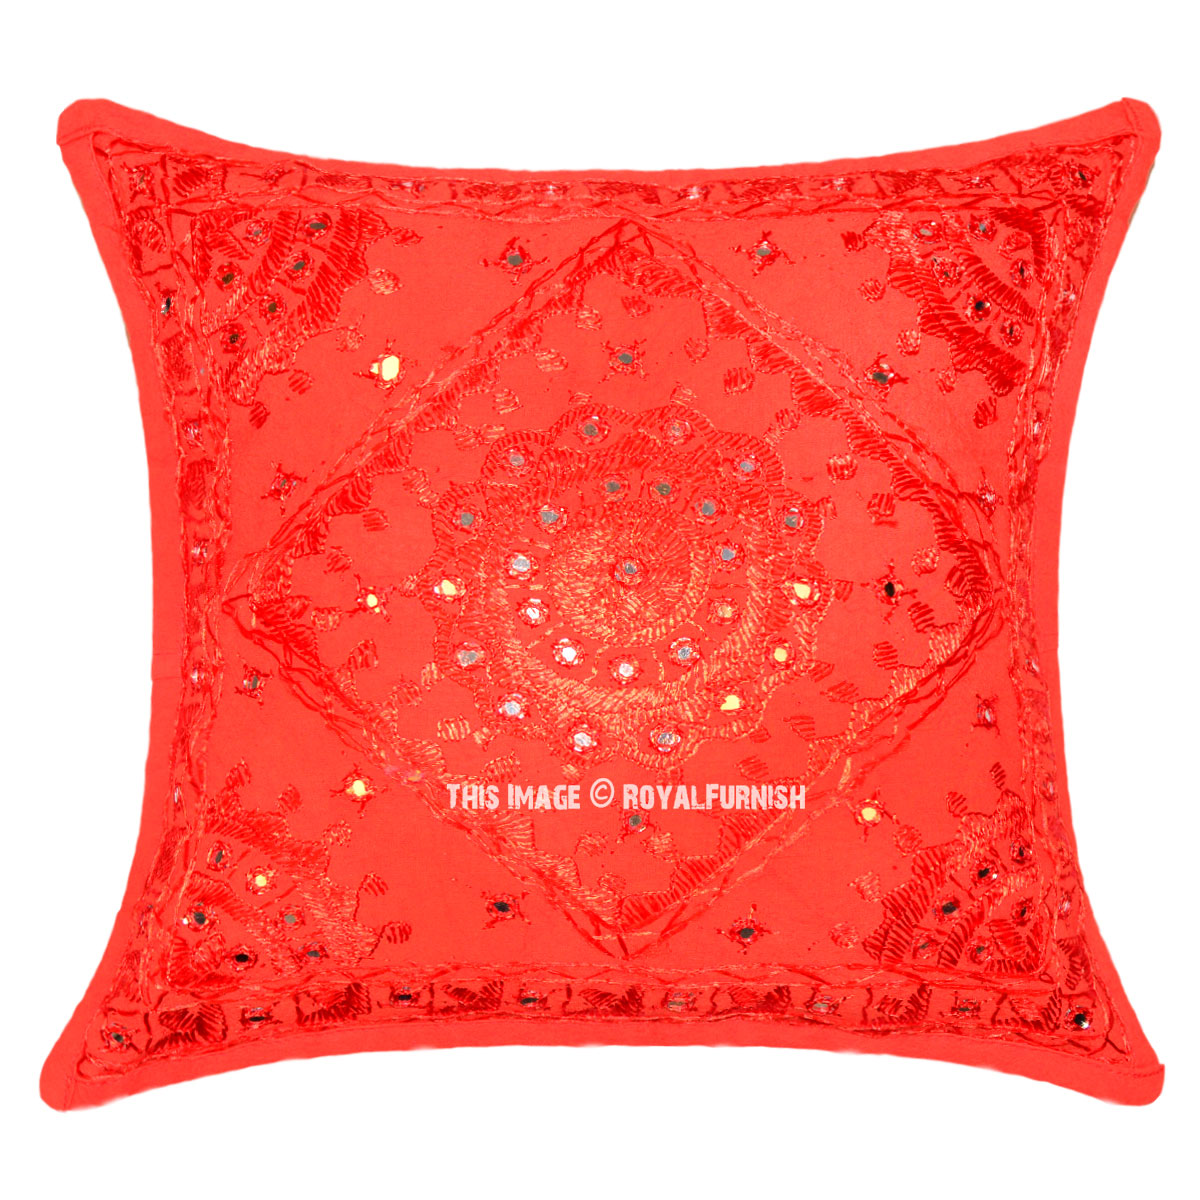 Vibrant Red Star Mirror Embroidered Decorative Square Throw Pillow Cover 16X16 - RoyalFurnish.com